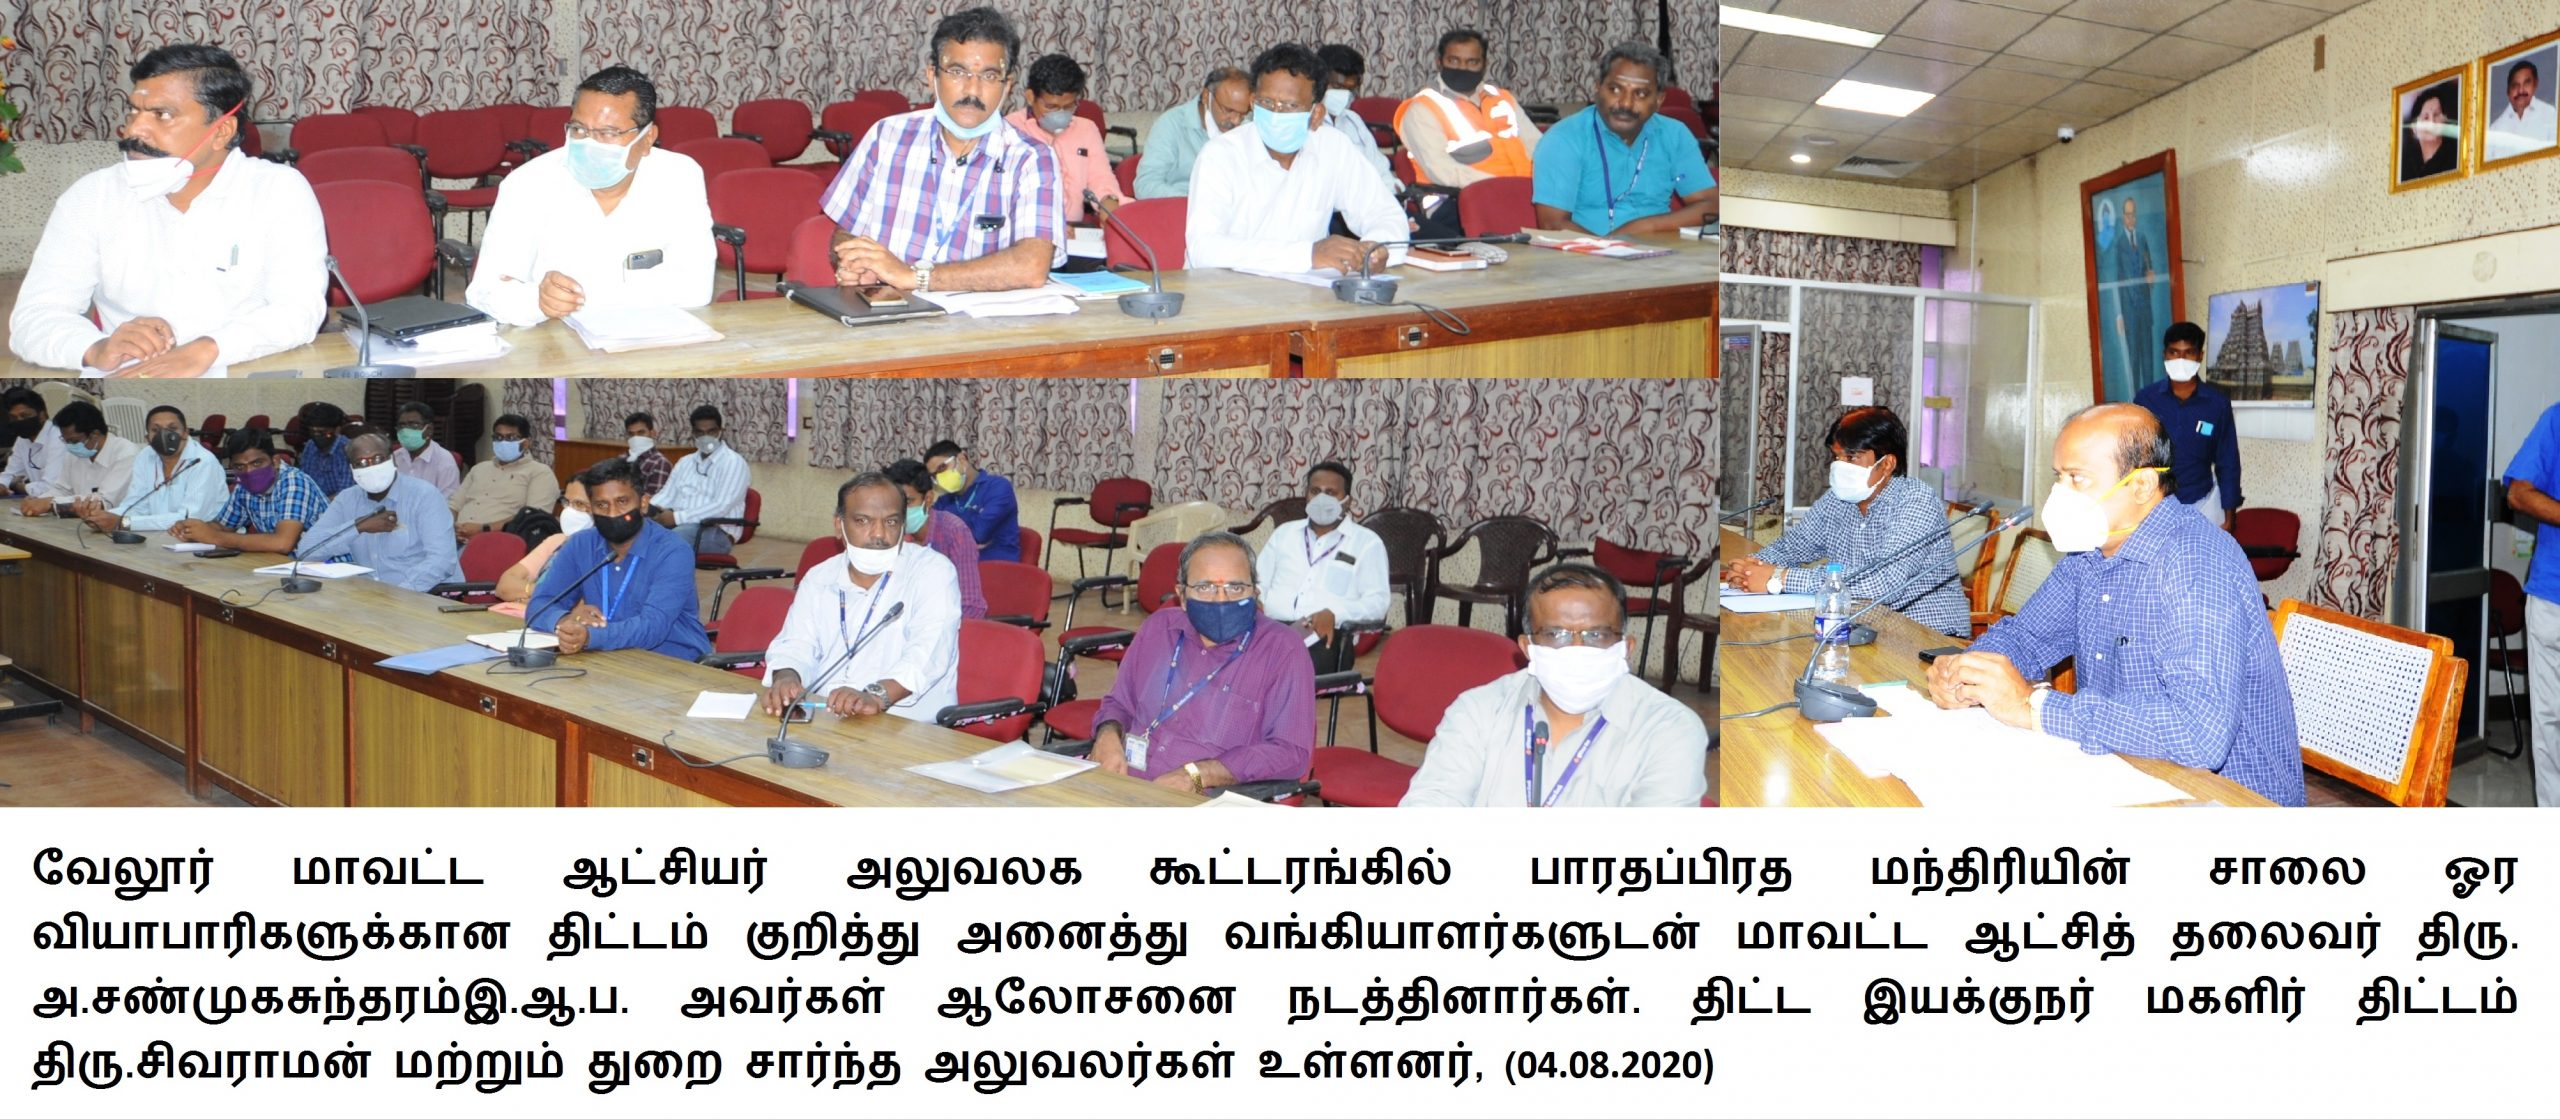 District Collector Meeting with All Bank's Officials 04-08-2020